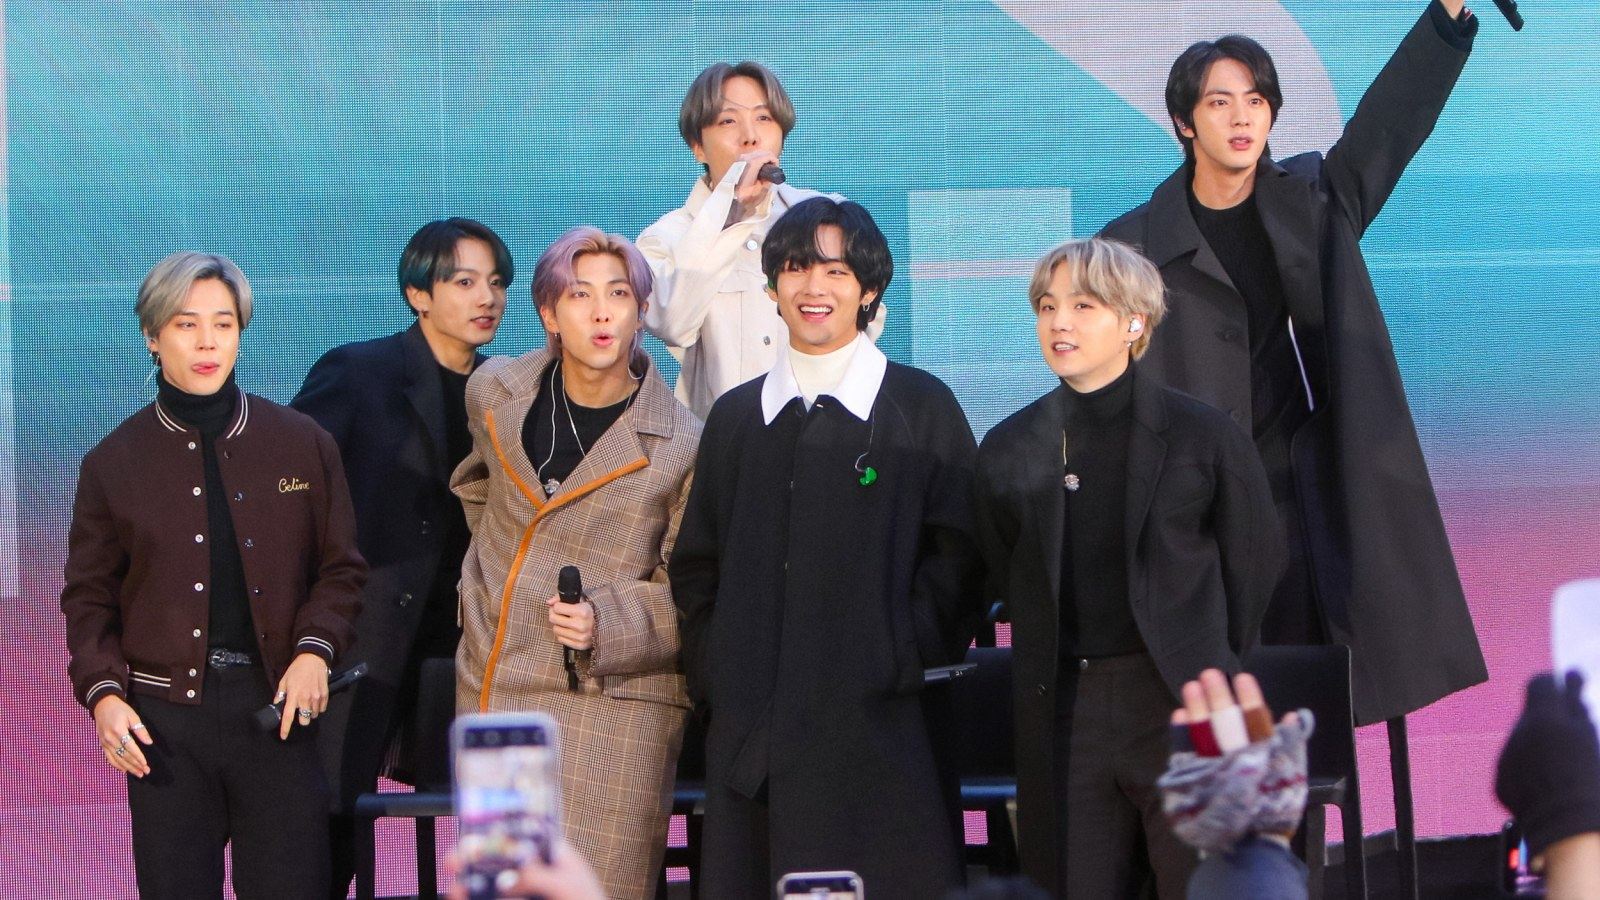 bts today show nyc feb 2020